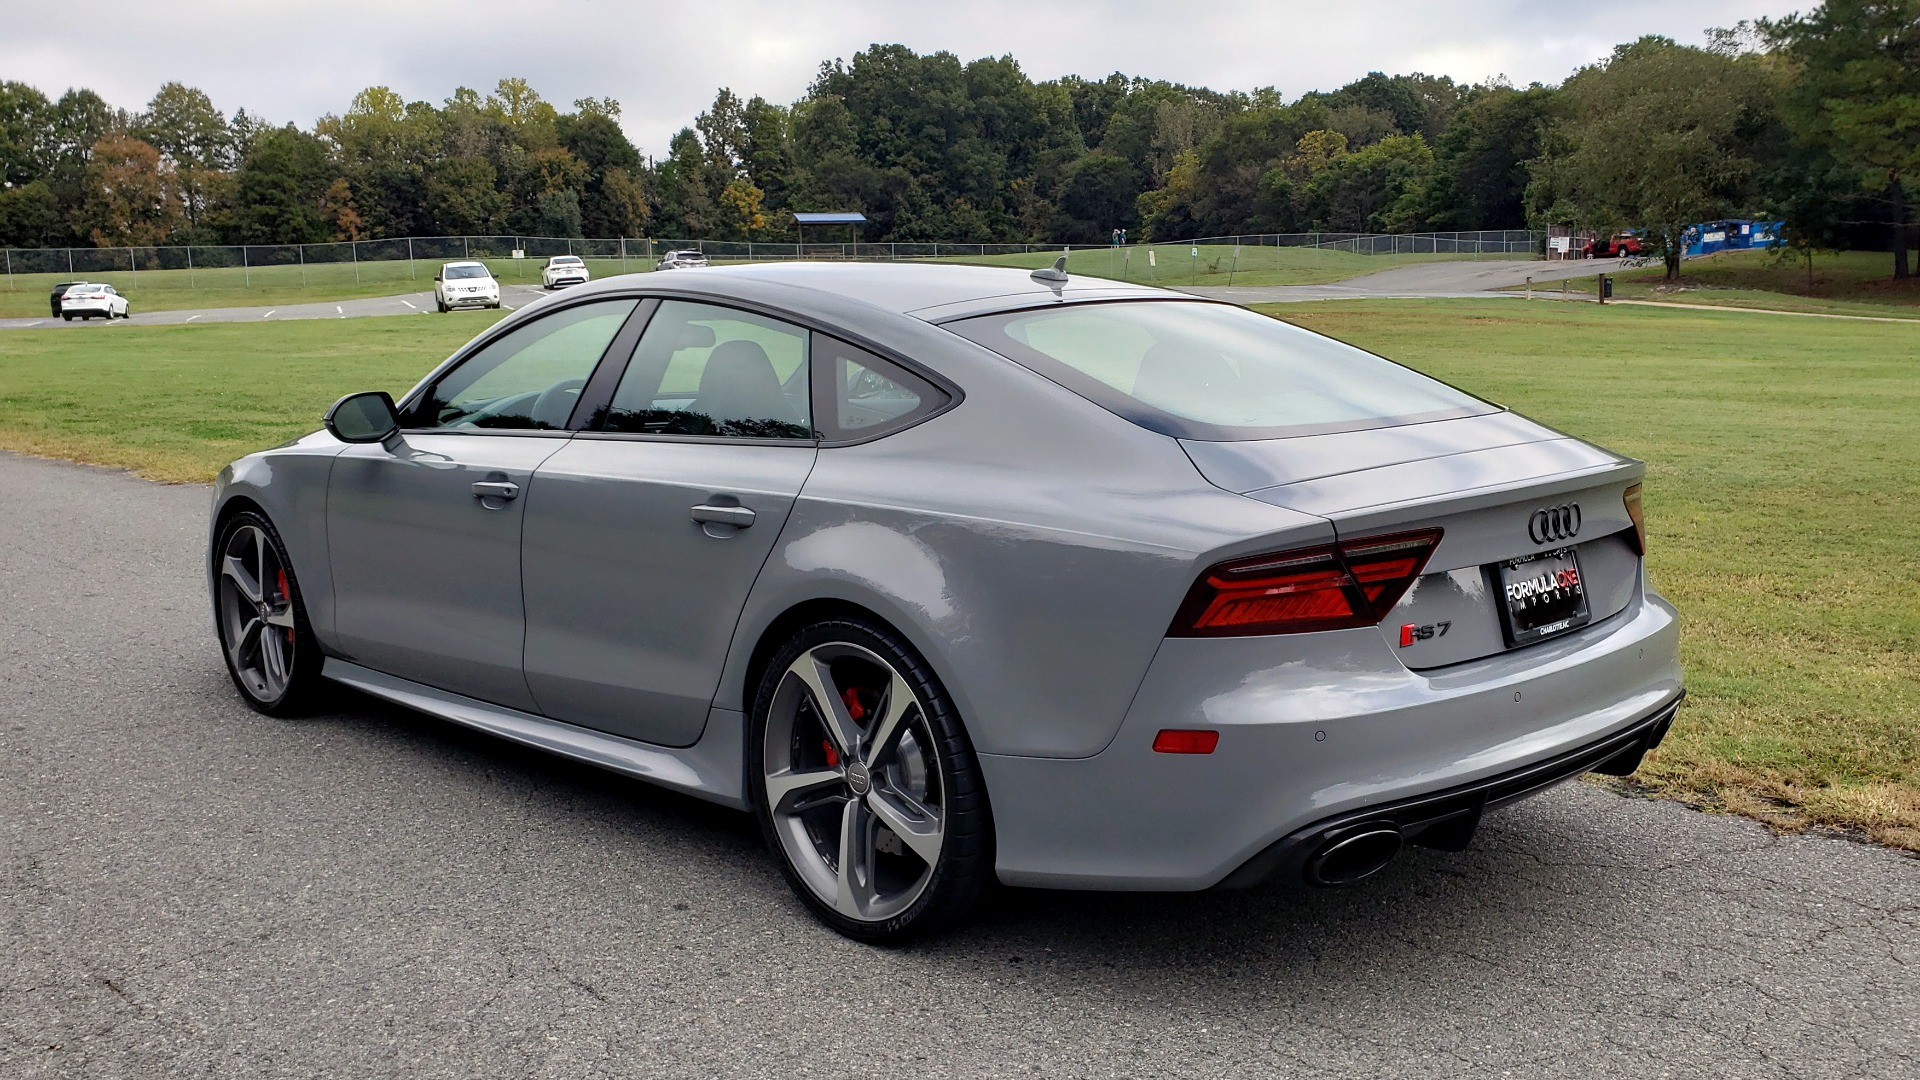 Used 2018 Audi RS 7 4.0T TIPTRONIC / CARBON OPTIC / DRVR ASST / NAV / REARVIEW / 750HP+ for sale Sold at Formula Imports in Charlotte NC 28227 8